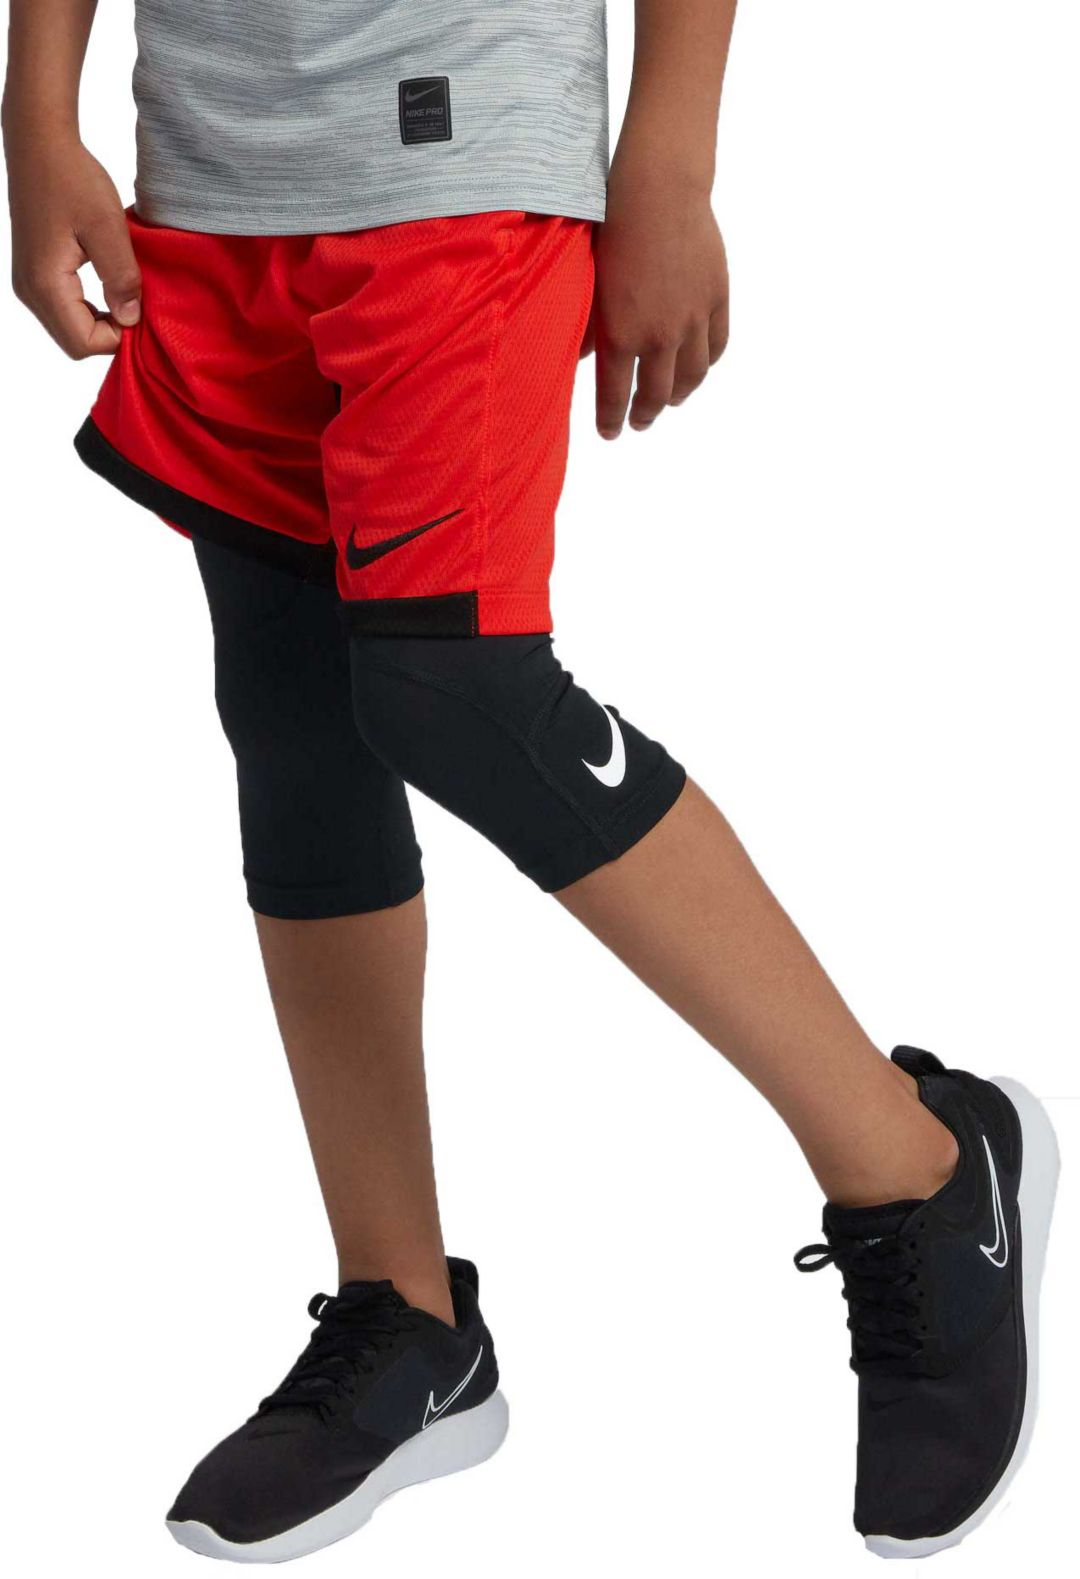 5f8ede3290 Nike Boys' Pro 3/4 Length Compression Tights | DICK'S Sporting Goods